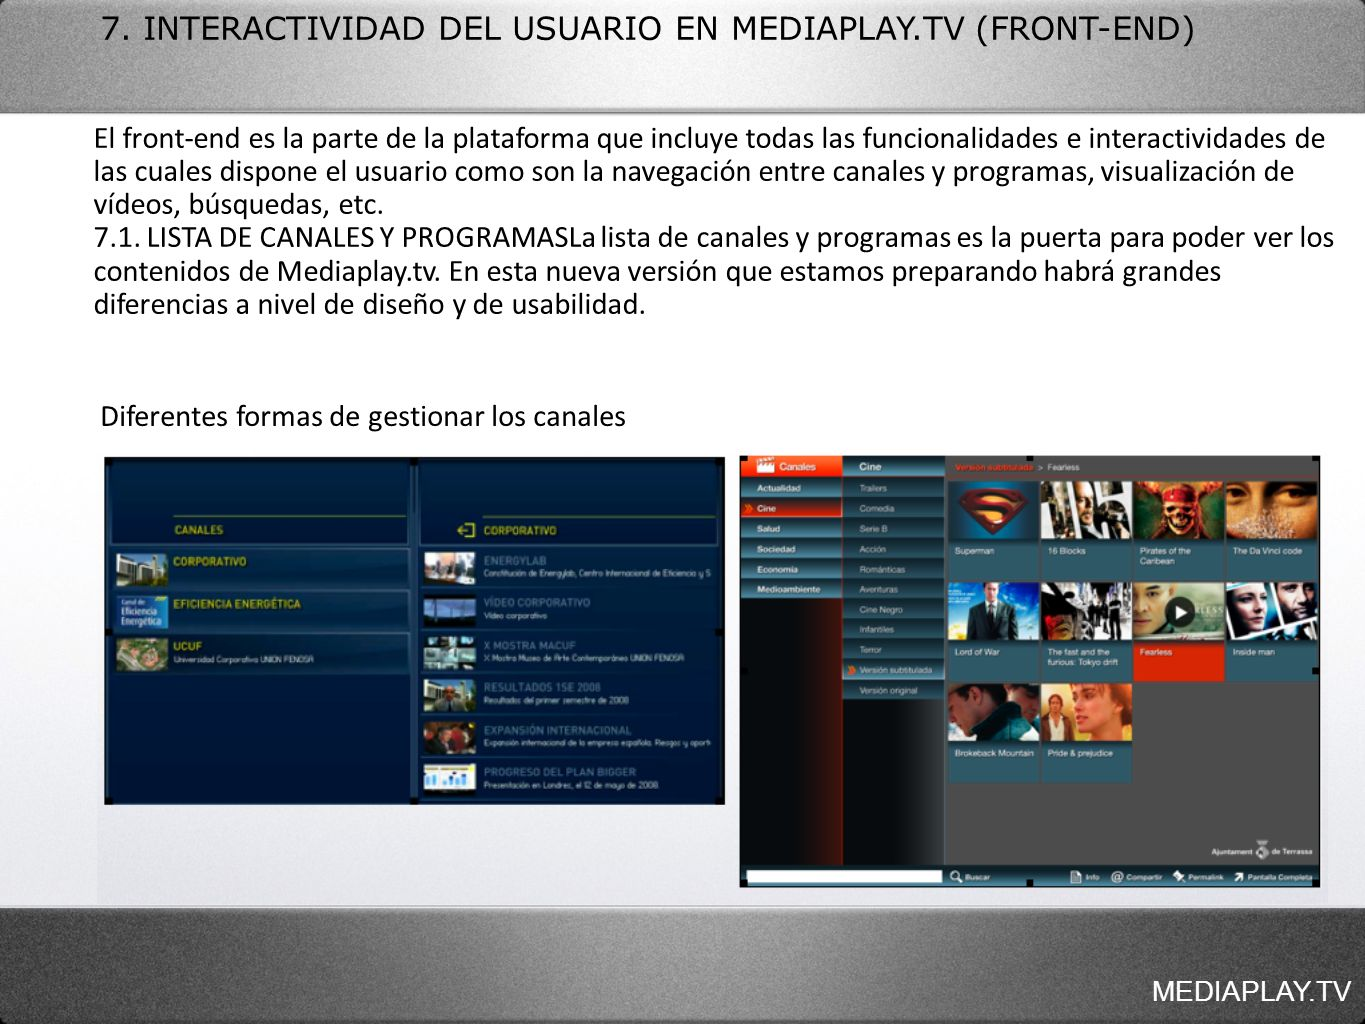 7. INTERACTIVIDAD DEL USUARIO EN MEDIAPLAY.TV (FRONT-END)